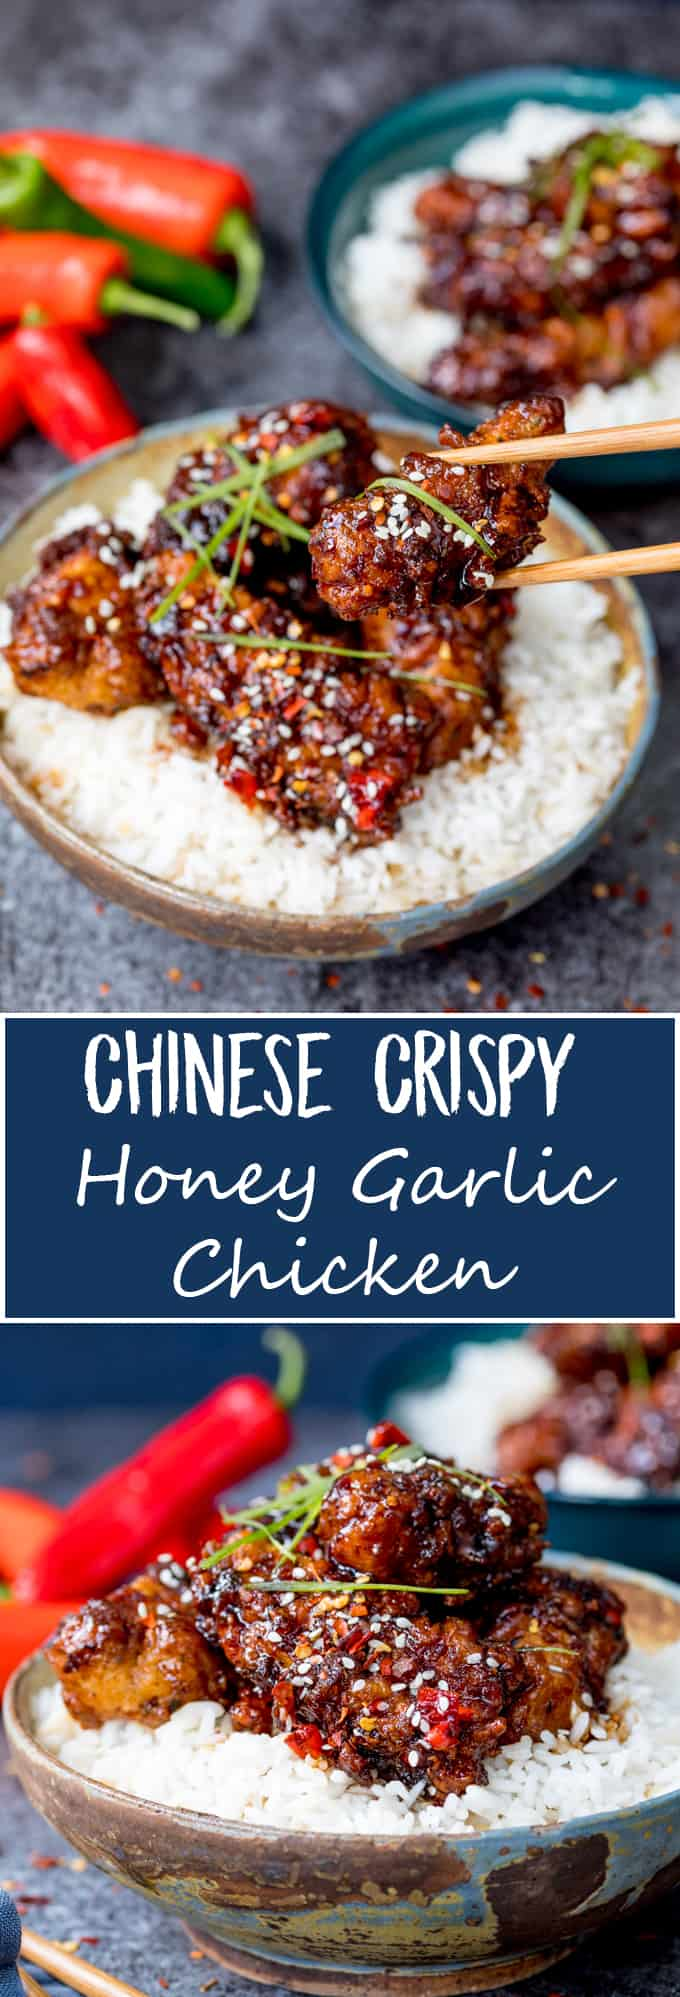 This Chinese Crispy Chicken with Honey Garlic Sauce is one of those meals everyone loves! Easy to make spicy or mild. Way tastier than takeout! #FriedChicken #Takeout #Recipe #ChineseFriedChicken